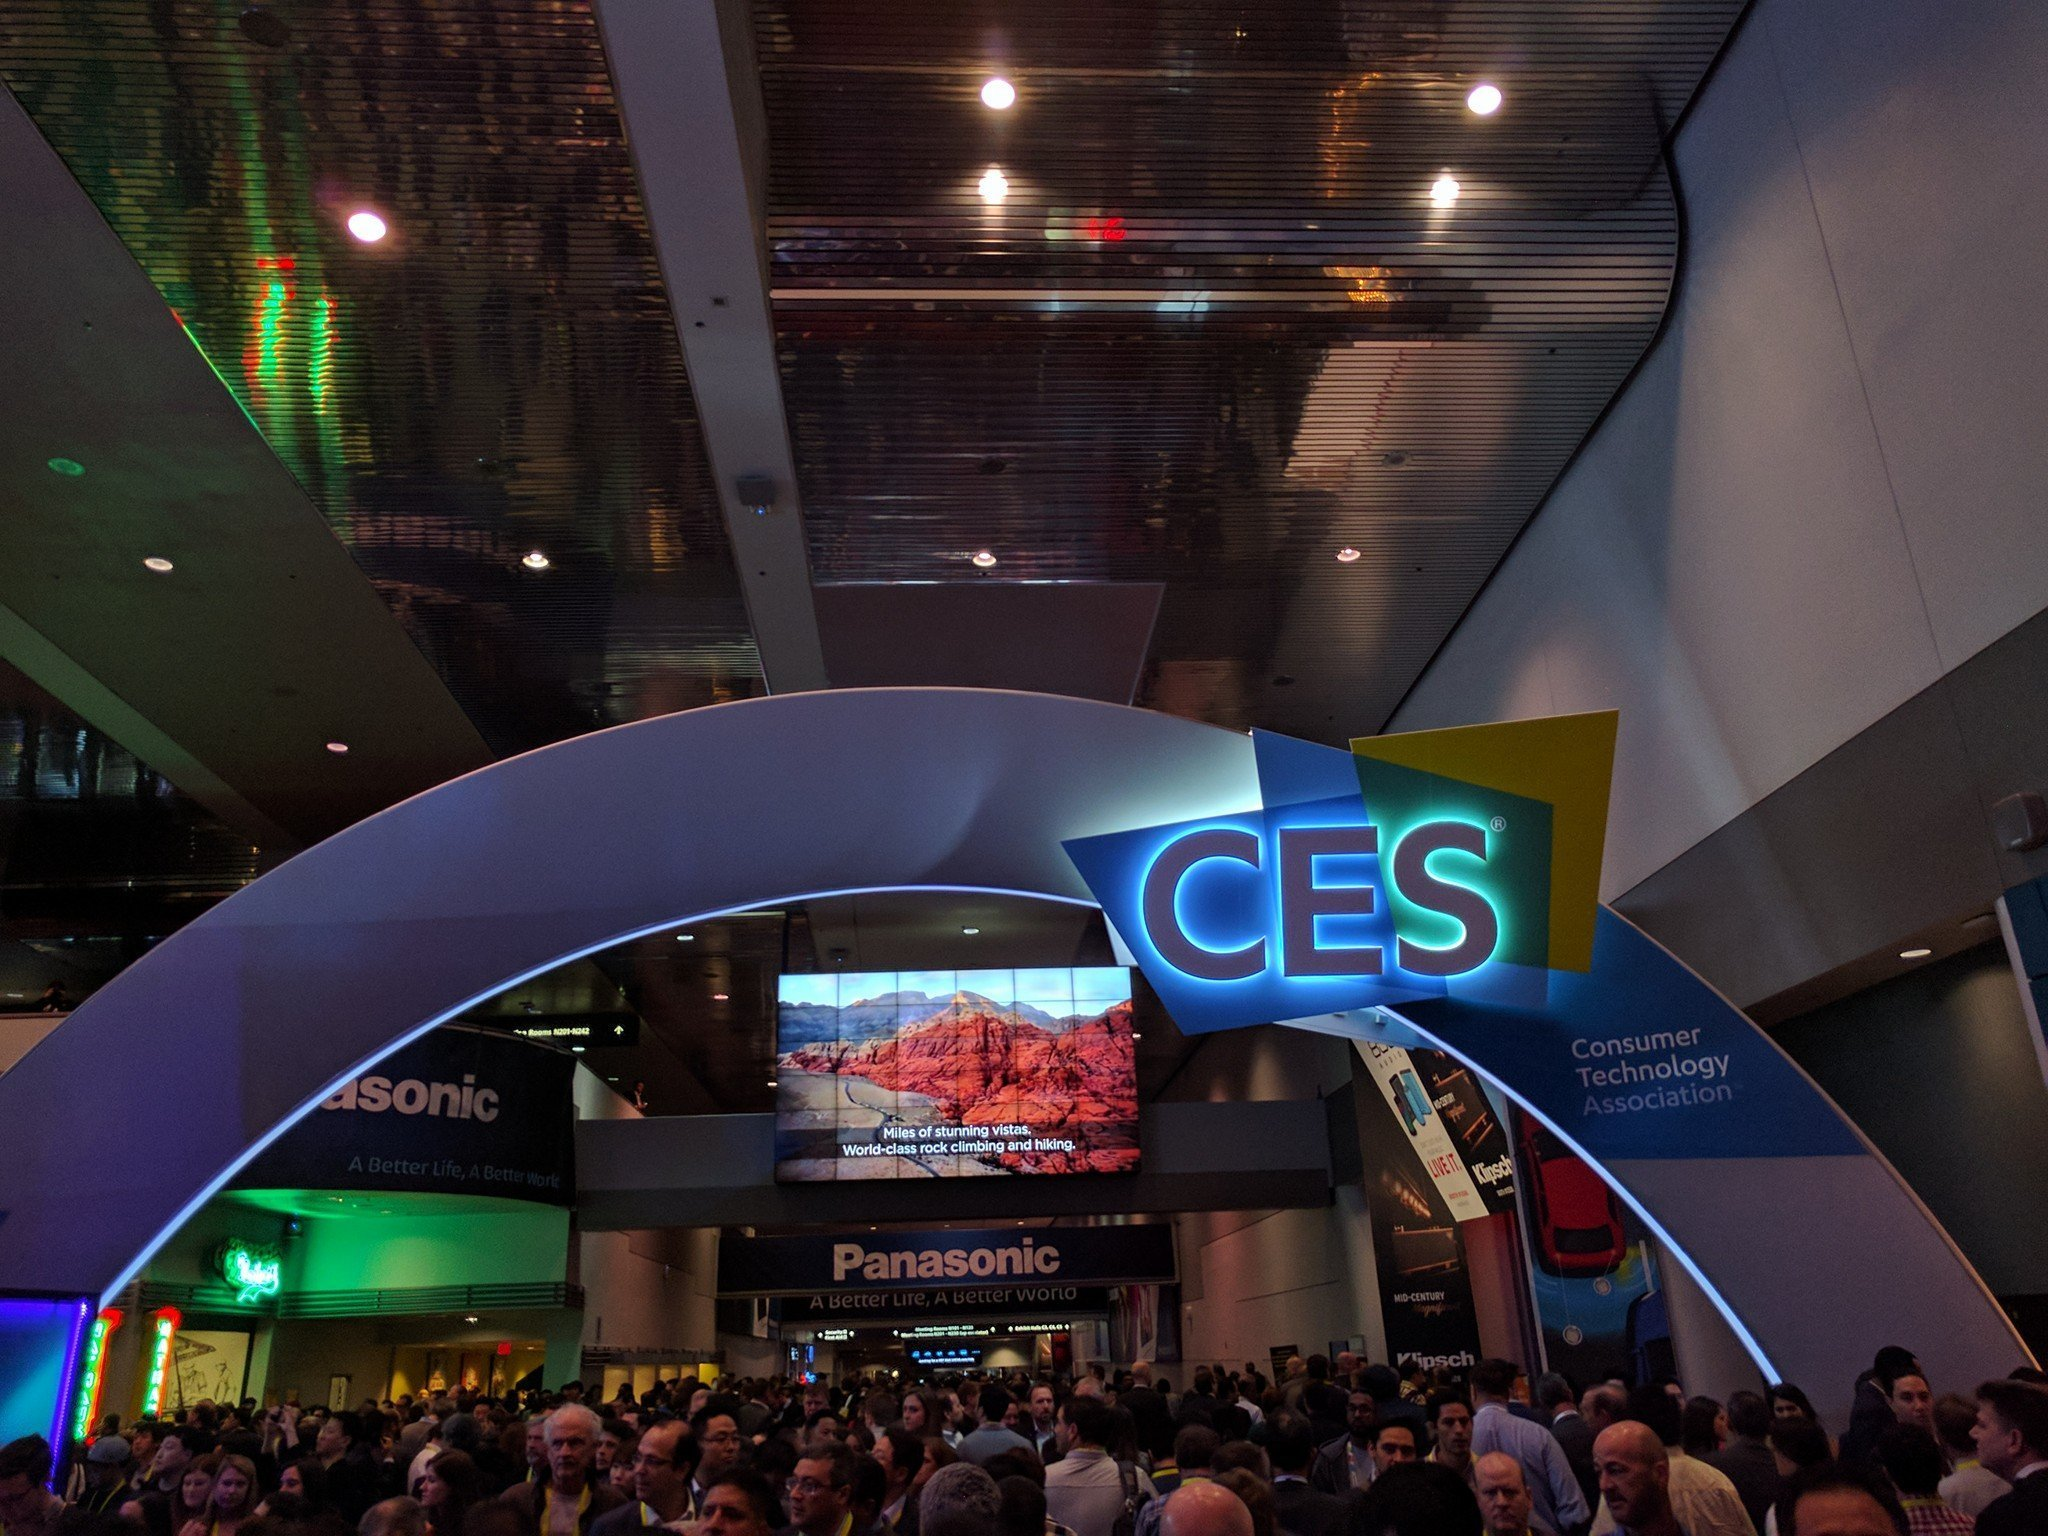 Traveling Foodie attends CES 2017 in Las Vegas